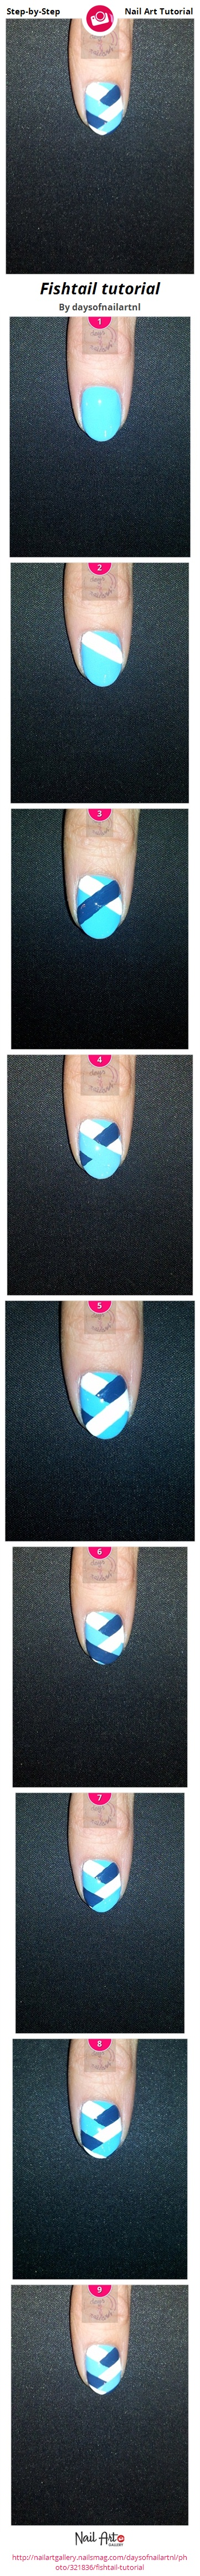 Fishtail tutorial - Nail Art Gallery